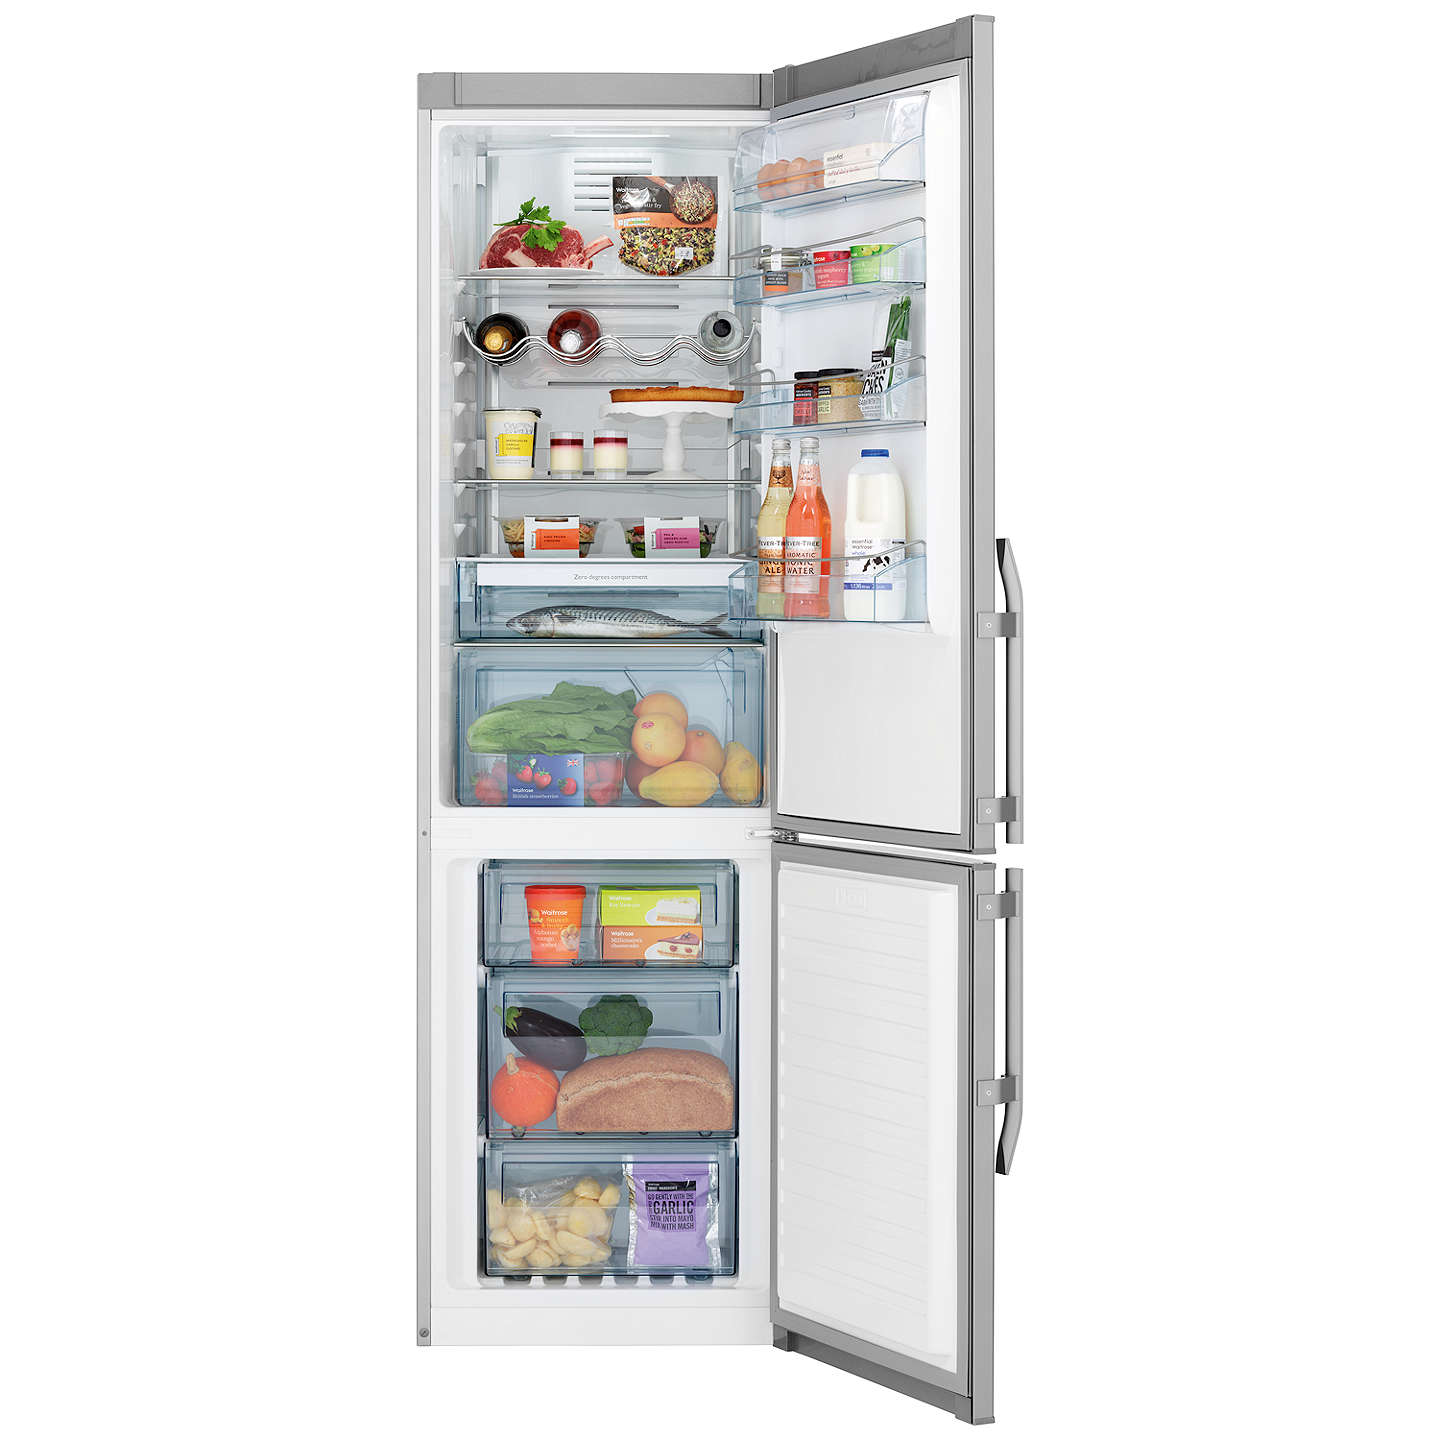 john lewis jlffs2033 freestanding fridge freezer a energy rating rh johnlewis com Zero Hedge Coke Zero